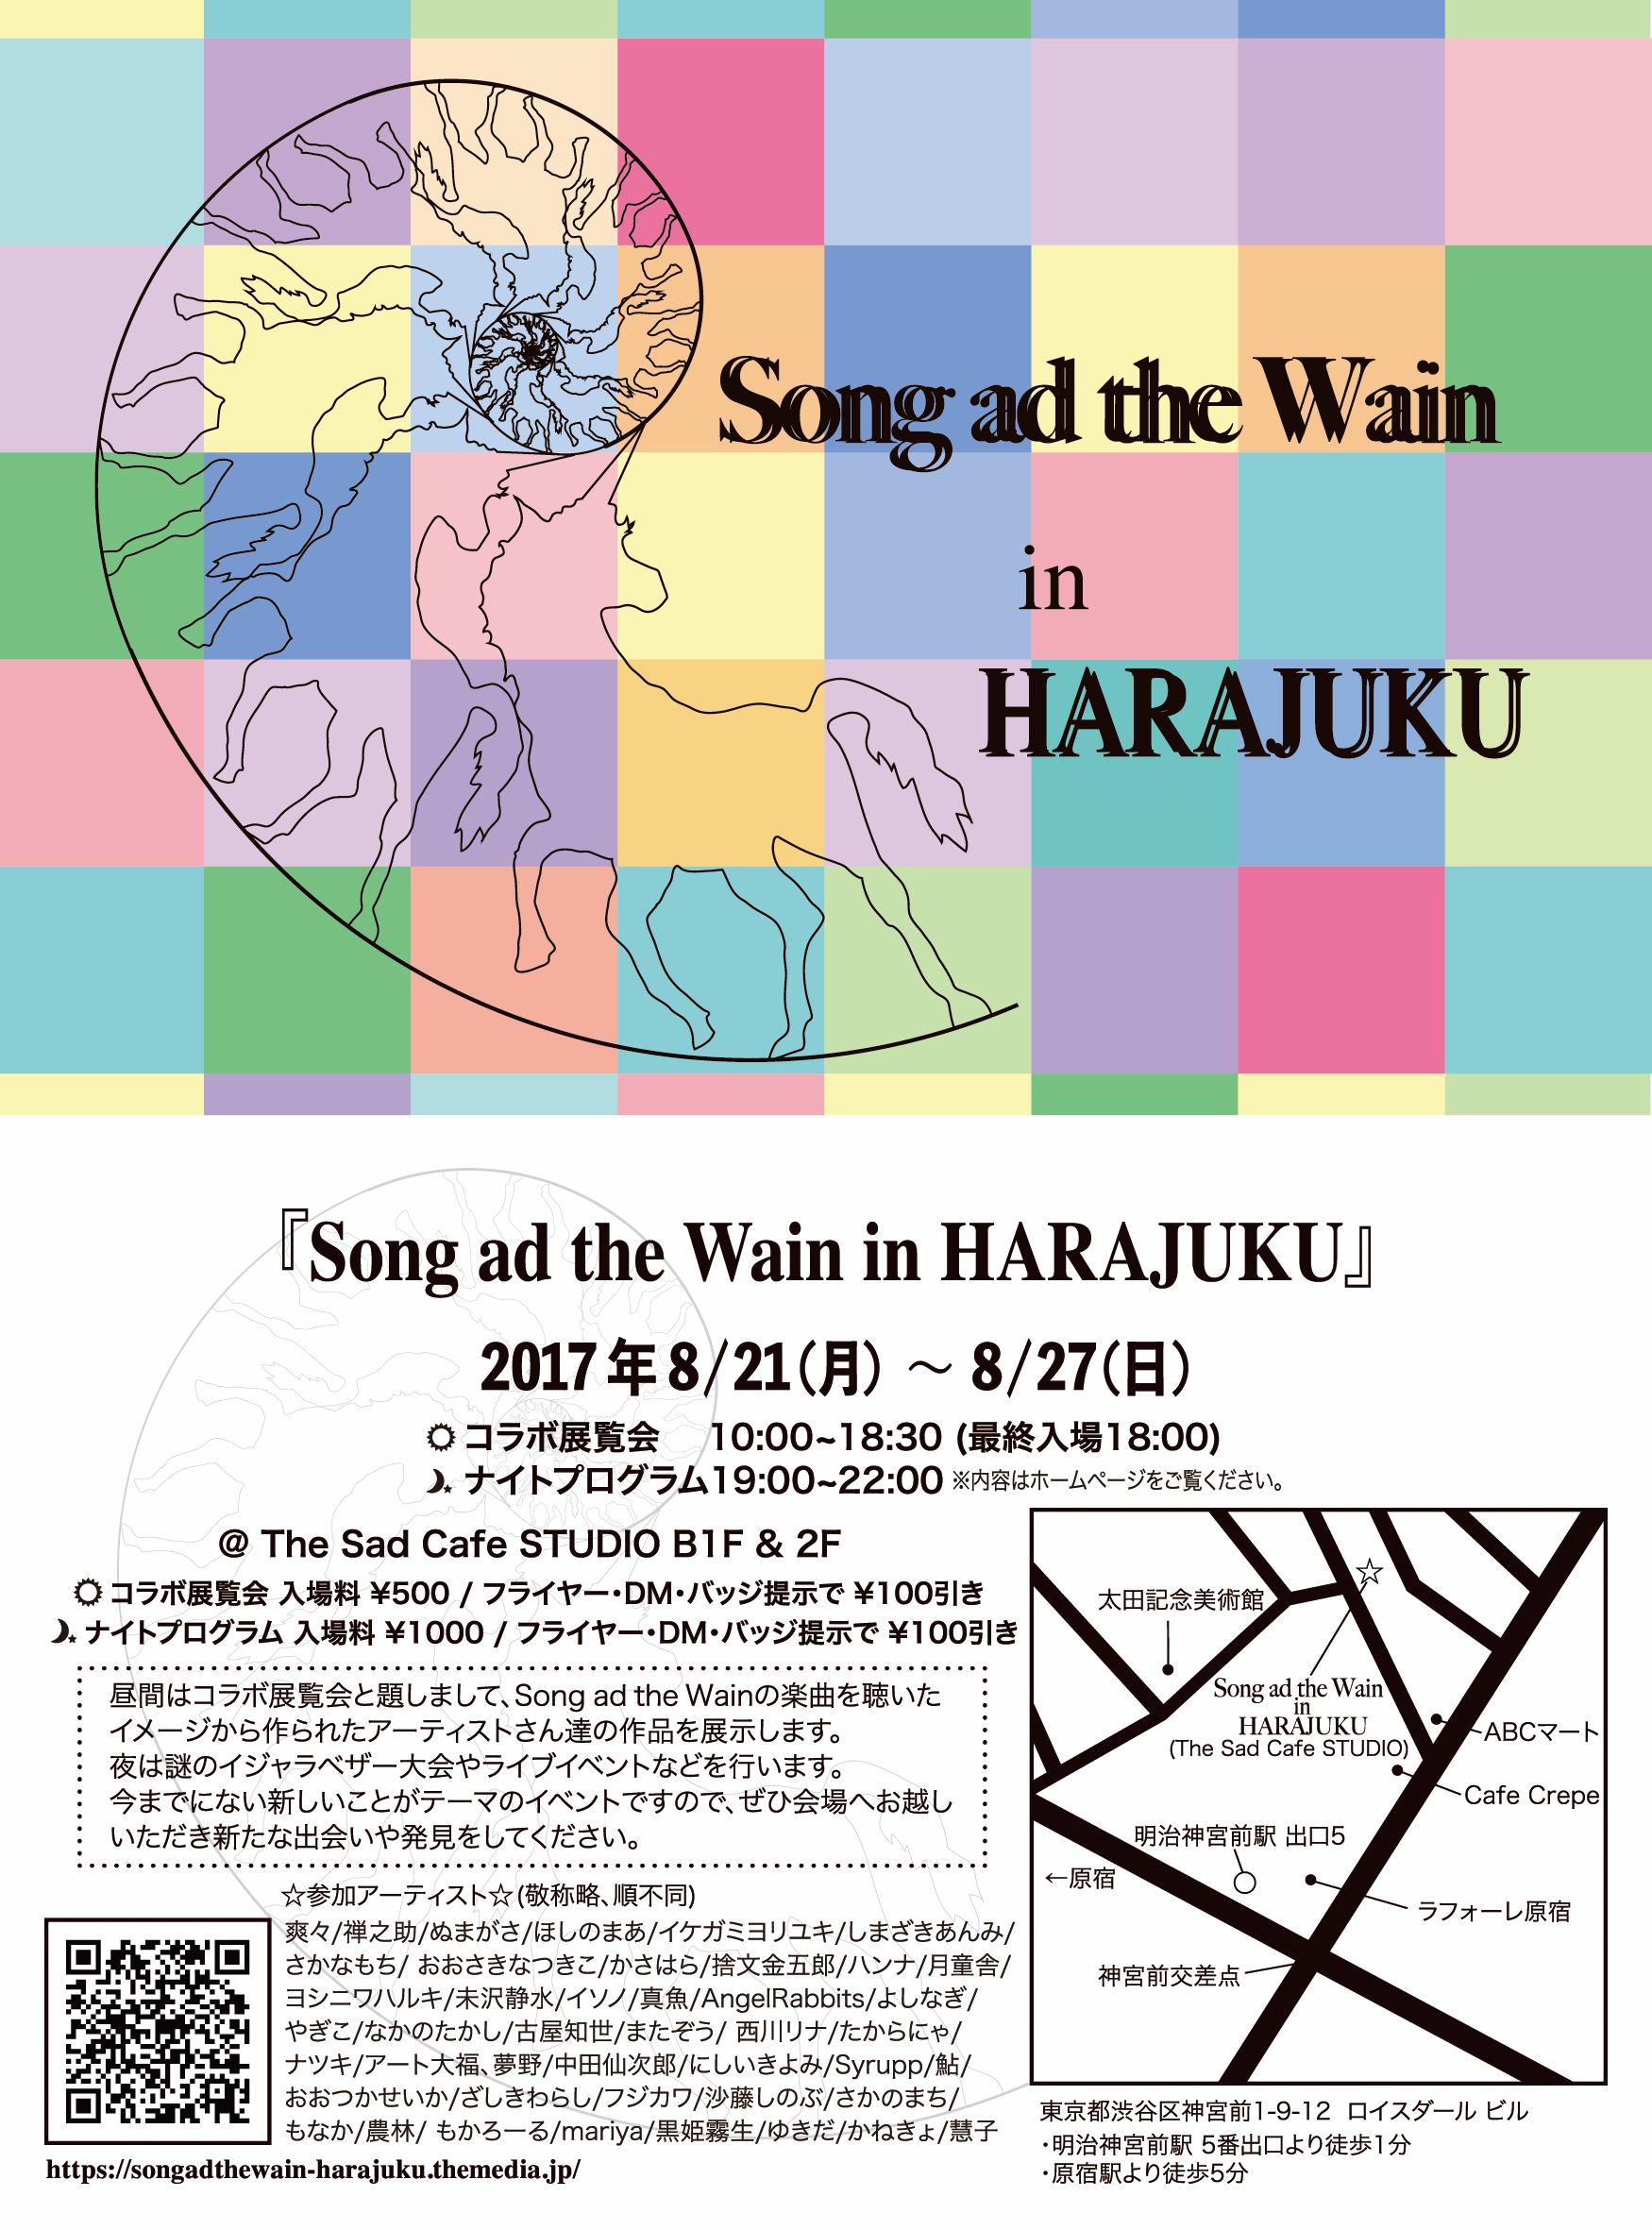 21-27/8/2017 exhibition in Harajuku